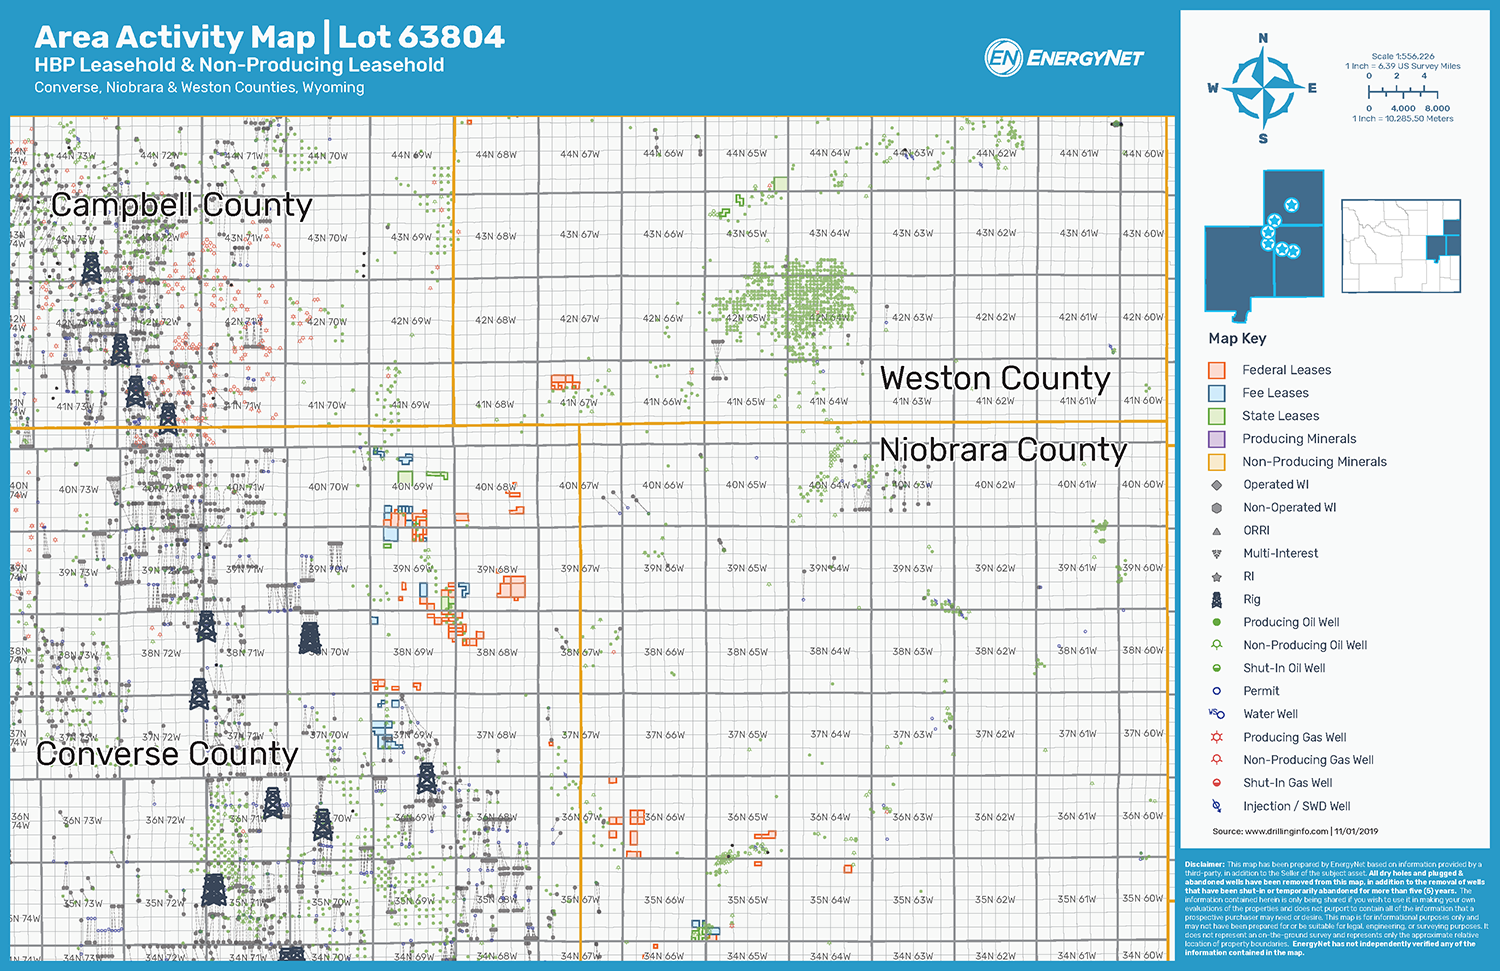 Lot 63804: Powder River Basin Opportunity Asset Map (Source: EnergyNet)